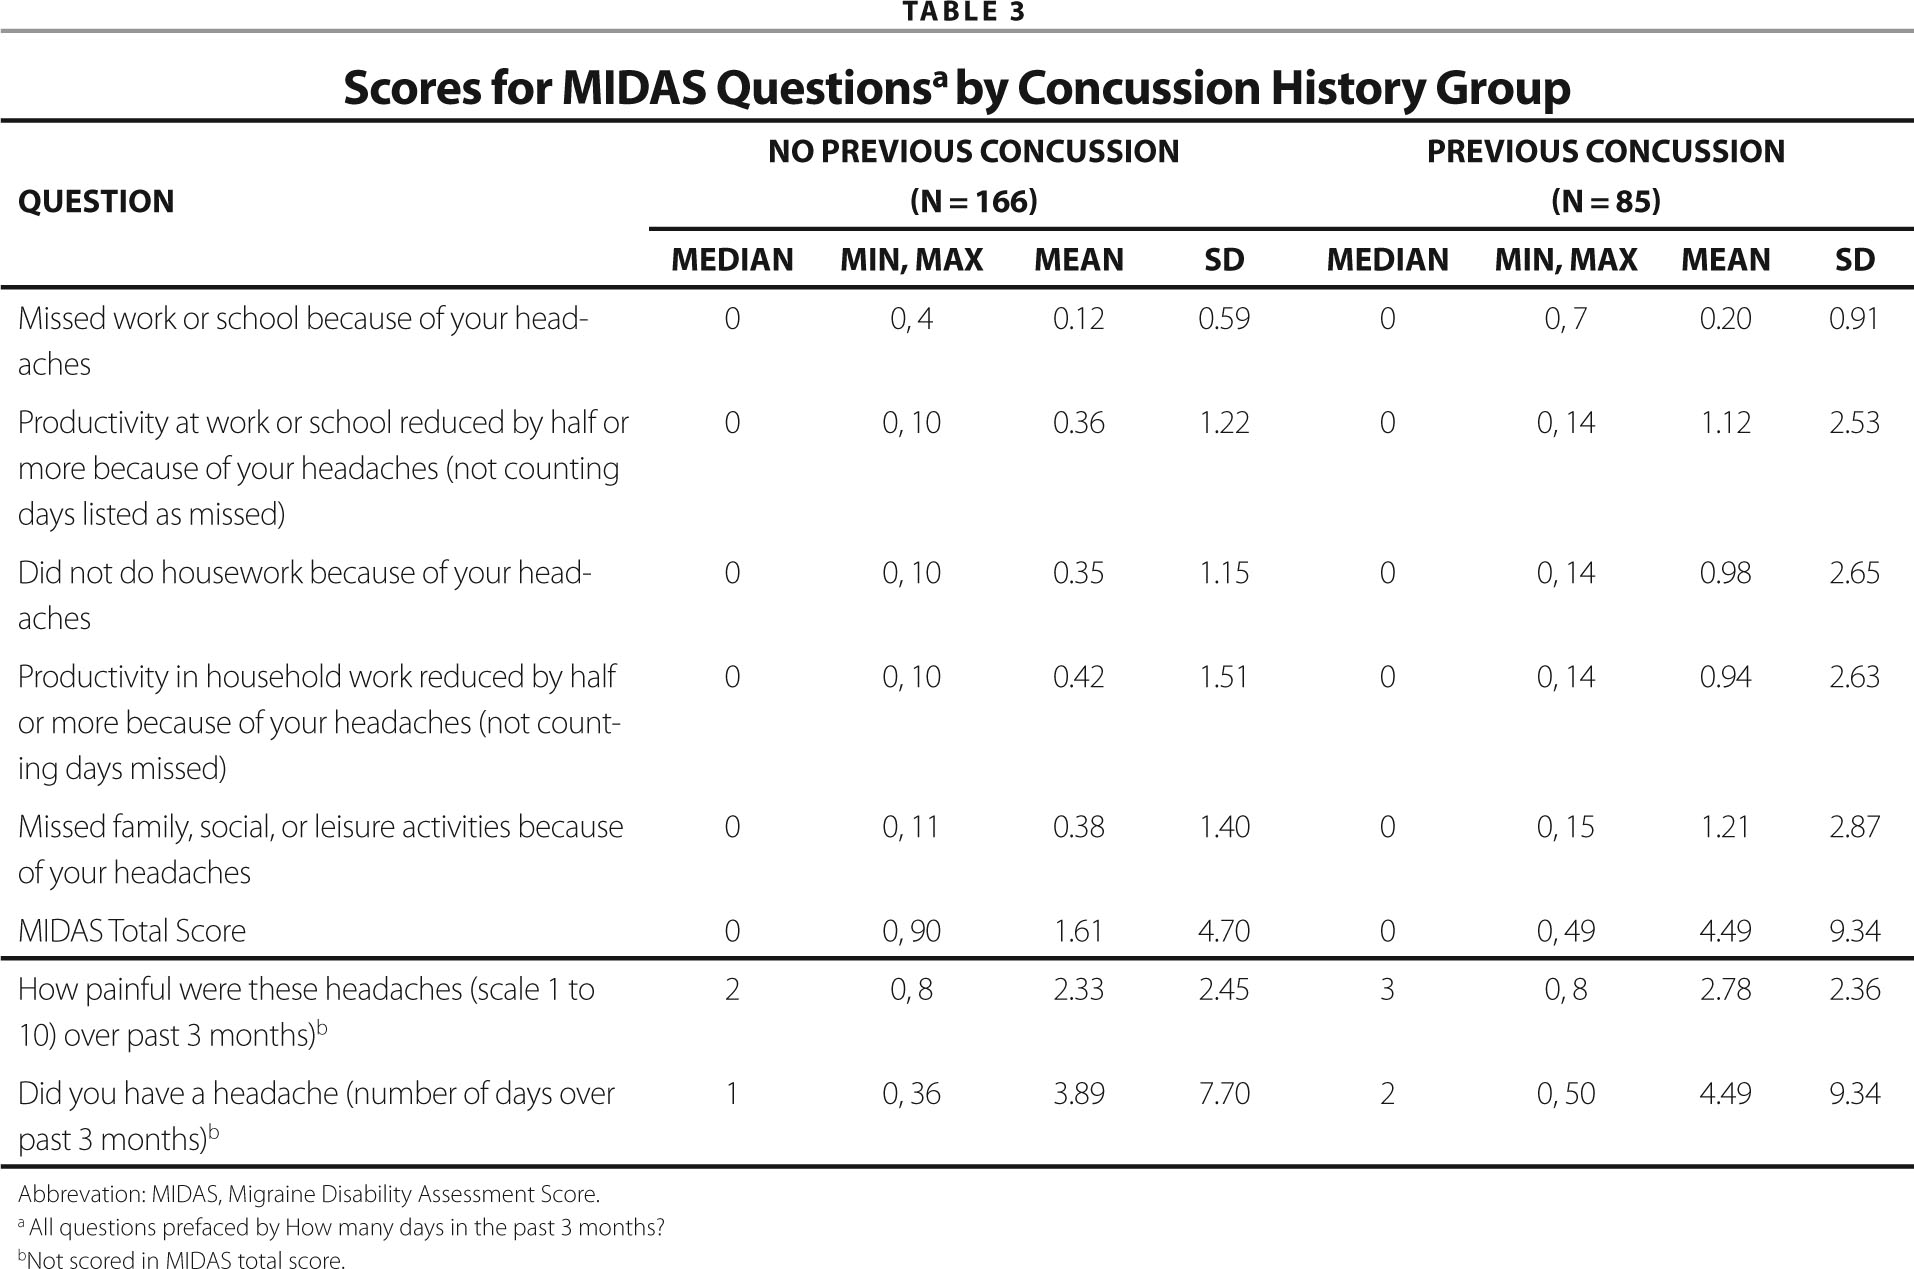 Scores for Midas Questionsa by Concussion History Group